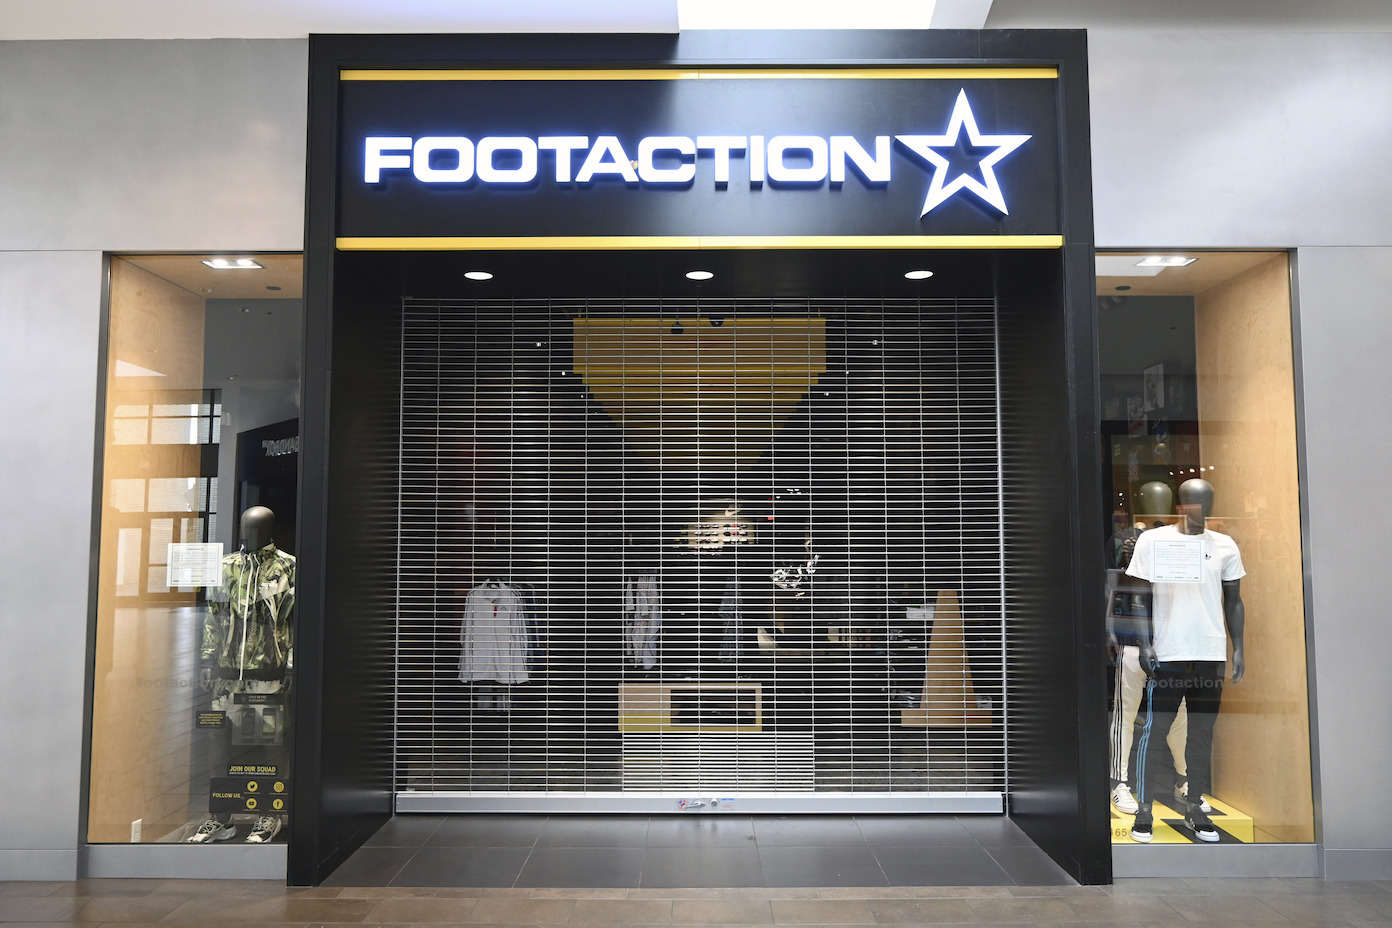 Total sales at Foot Locker increased by 83 percent to $2.2 billion in the first quarter of 2021, with the athleticwear and footwear retailer reeling in net income of $202 million.